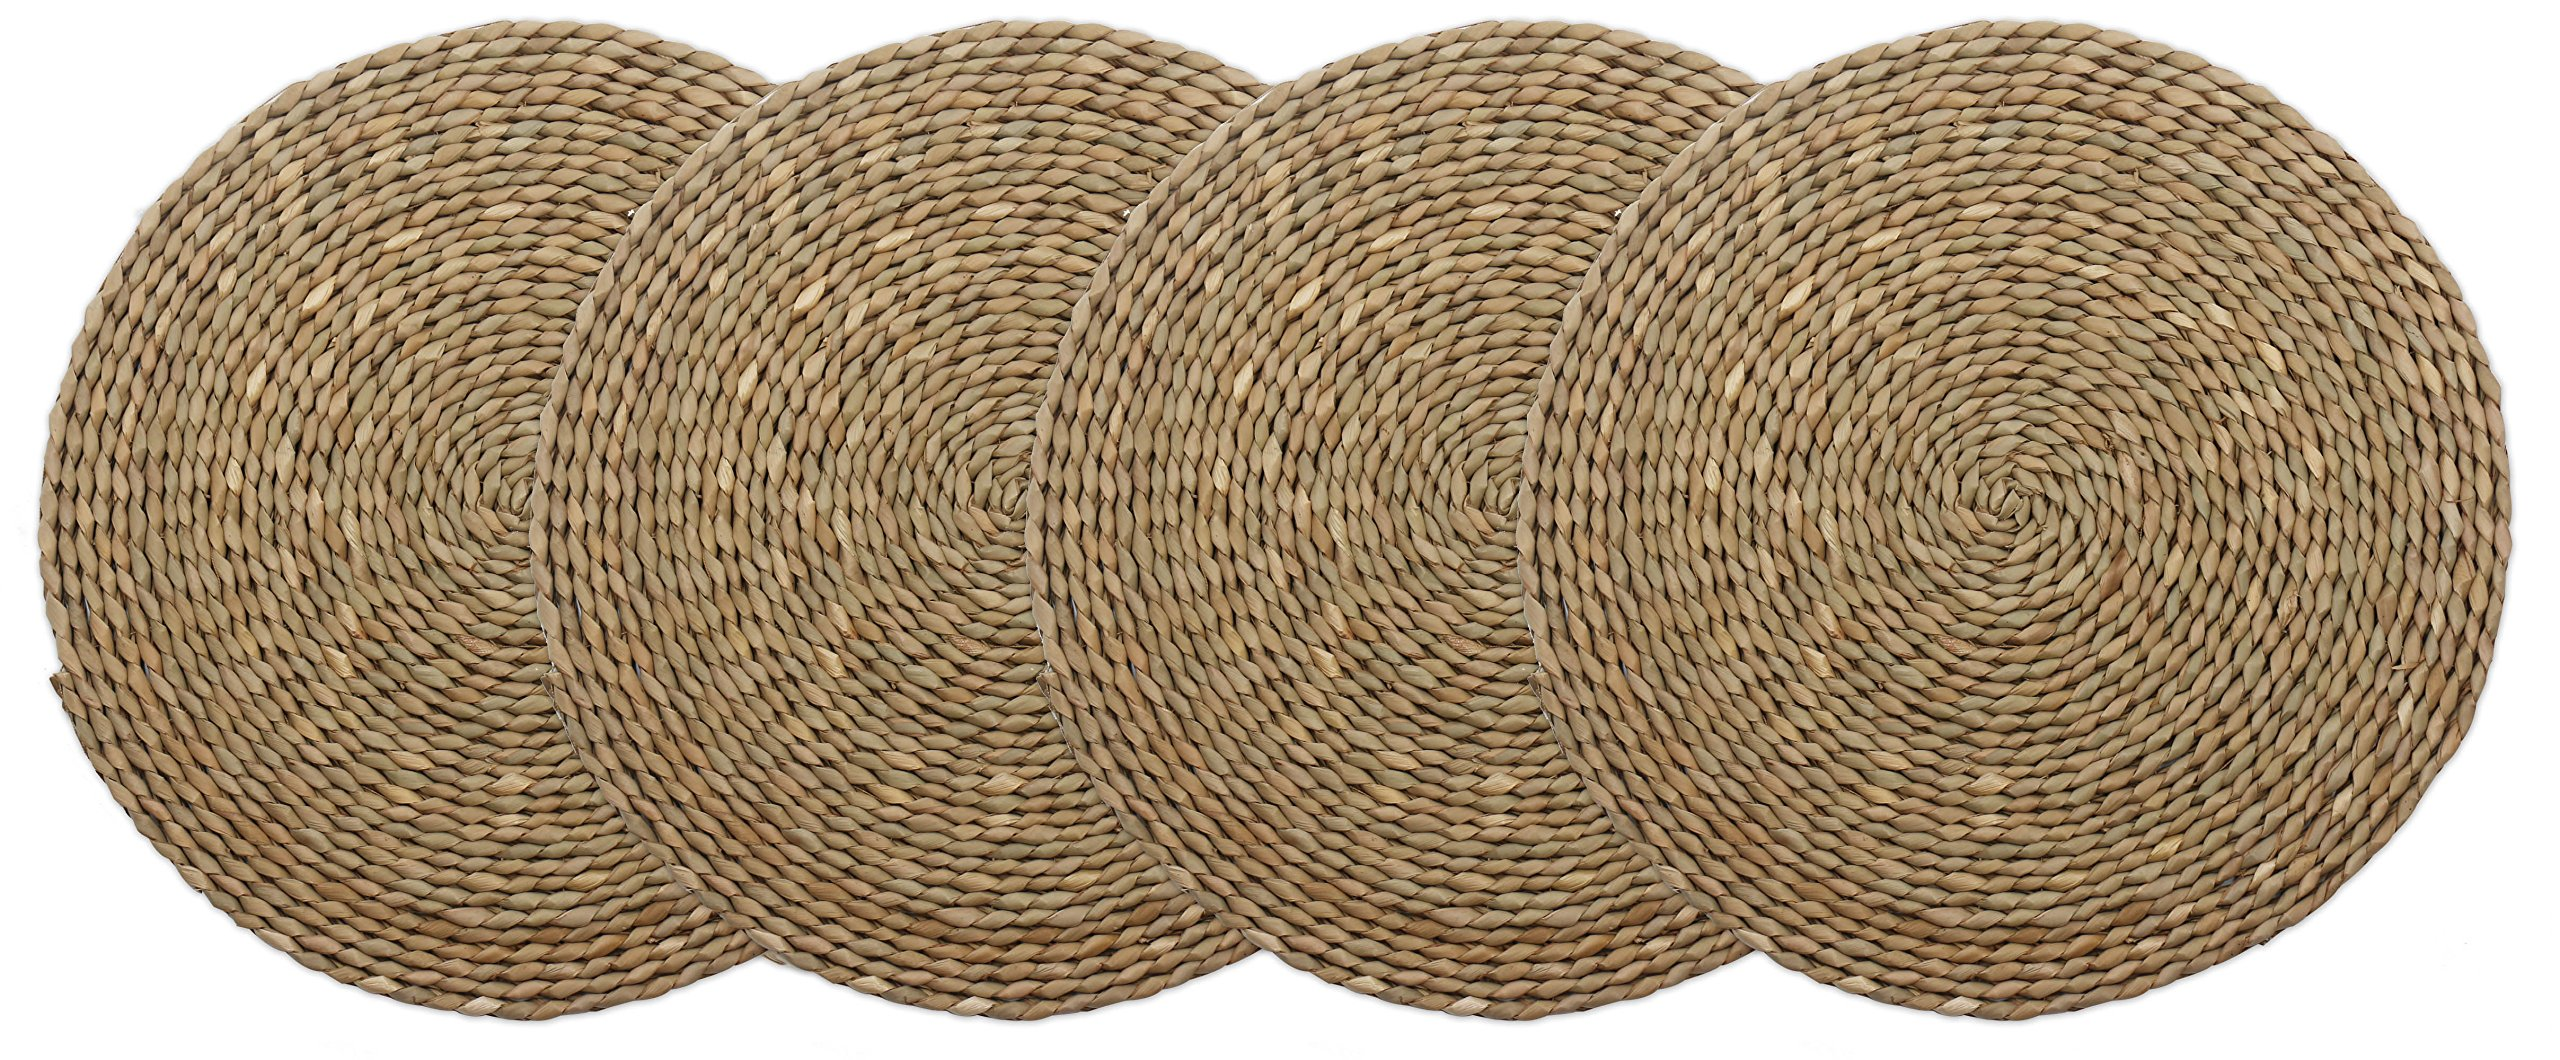 wellhouse Wooden Round Braided Mat Natural Handmade Straw Woven Placemat Insulation Resuable Non-Slip Pad (15.7Inch, Miao Grass-4)